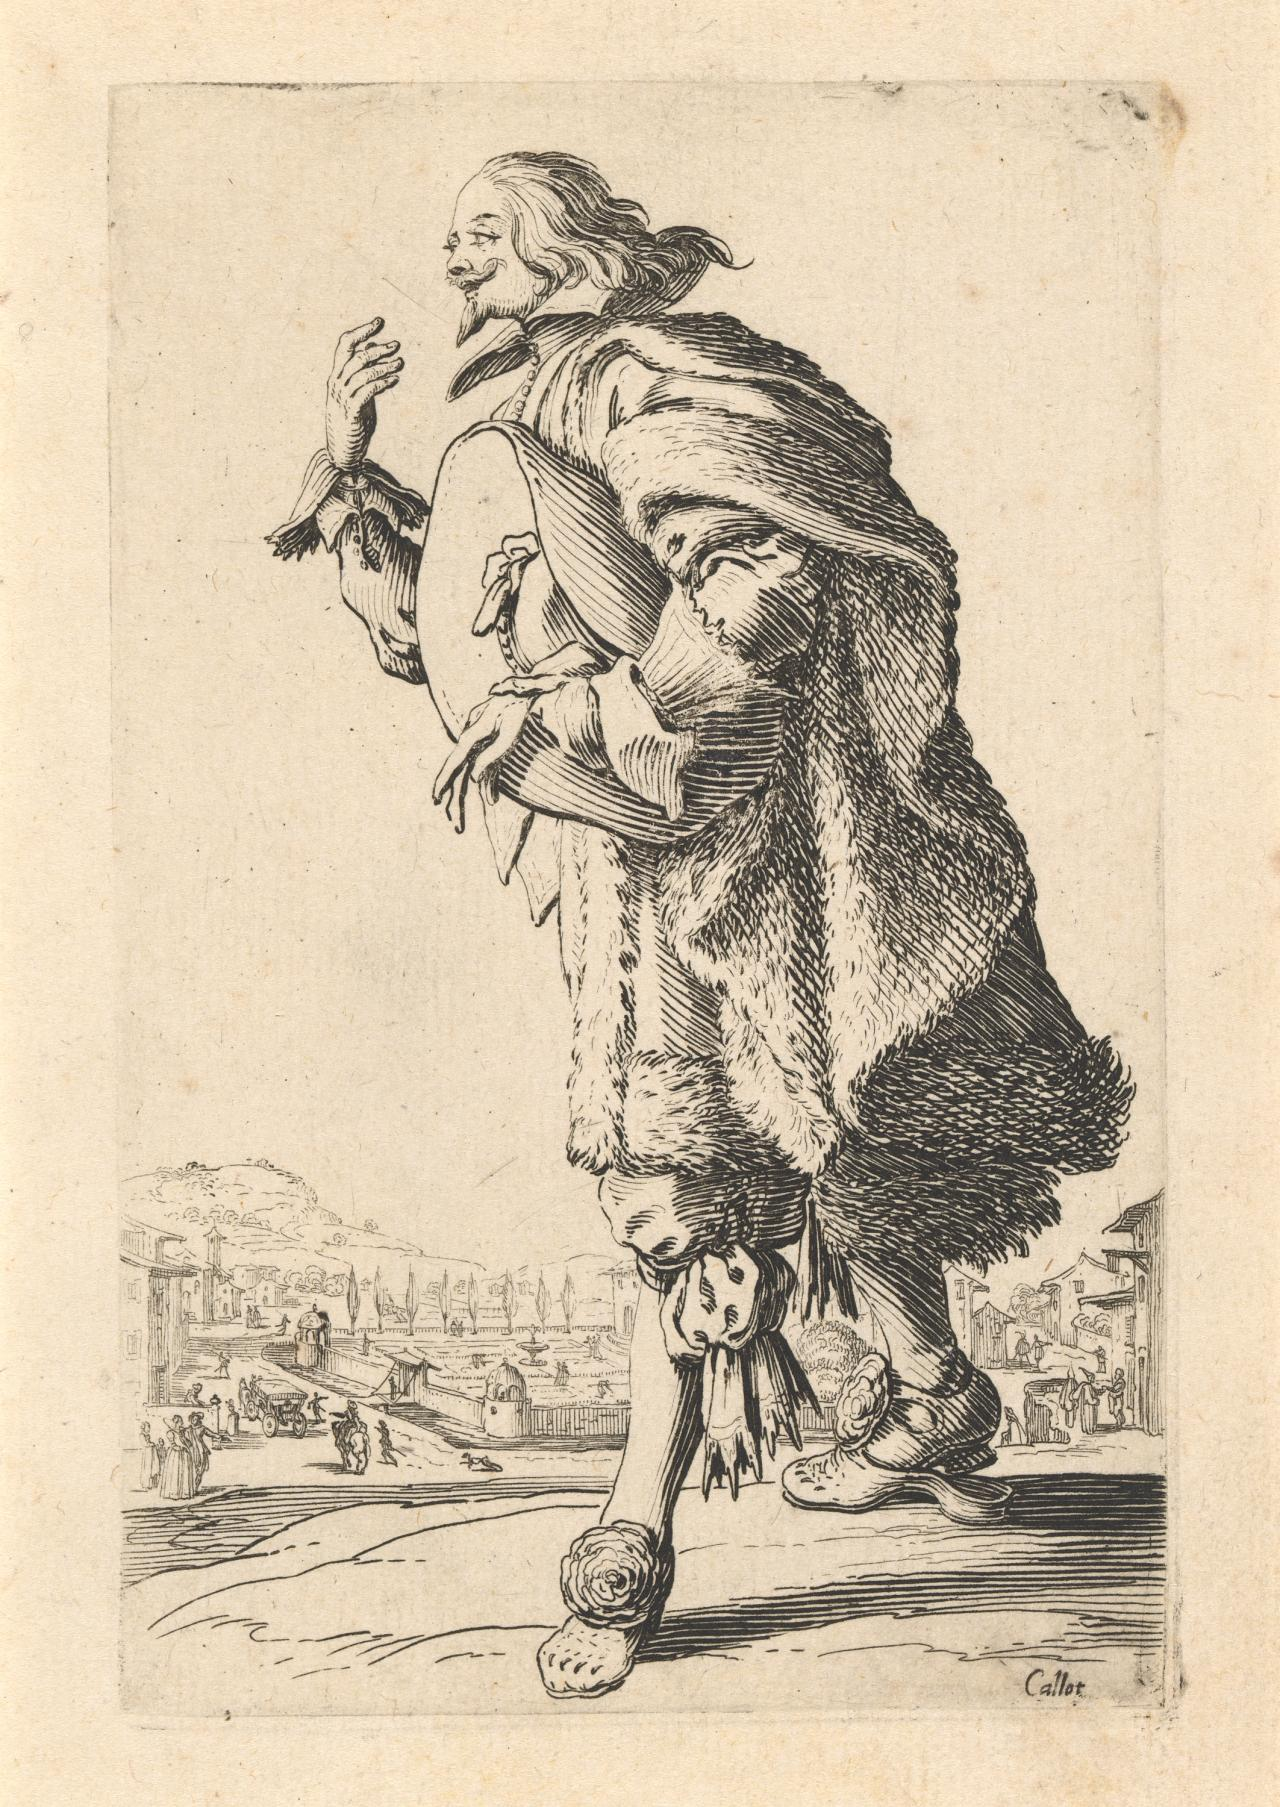 Nobleman bowing with felt hat under his arm